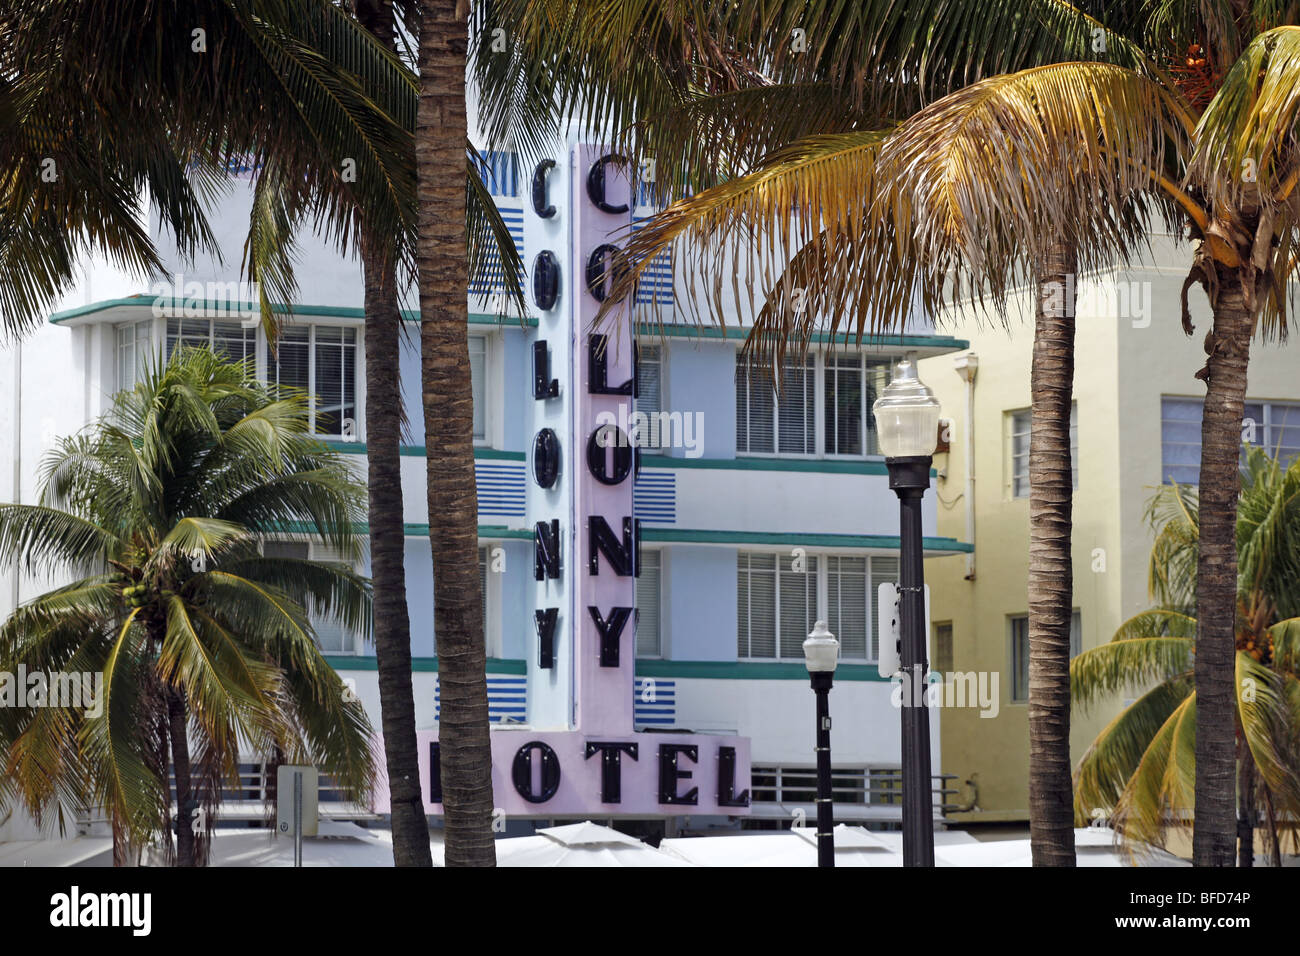 The Colony Hotel on Ocean Drive, Miami Beach - Stock Image